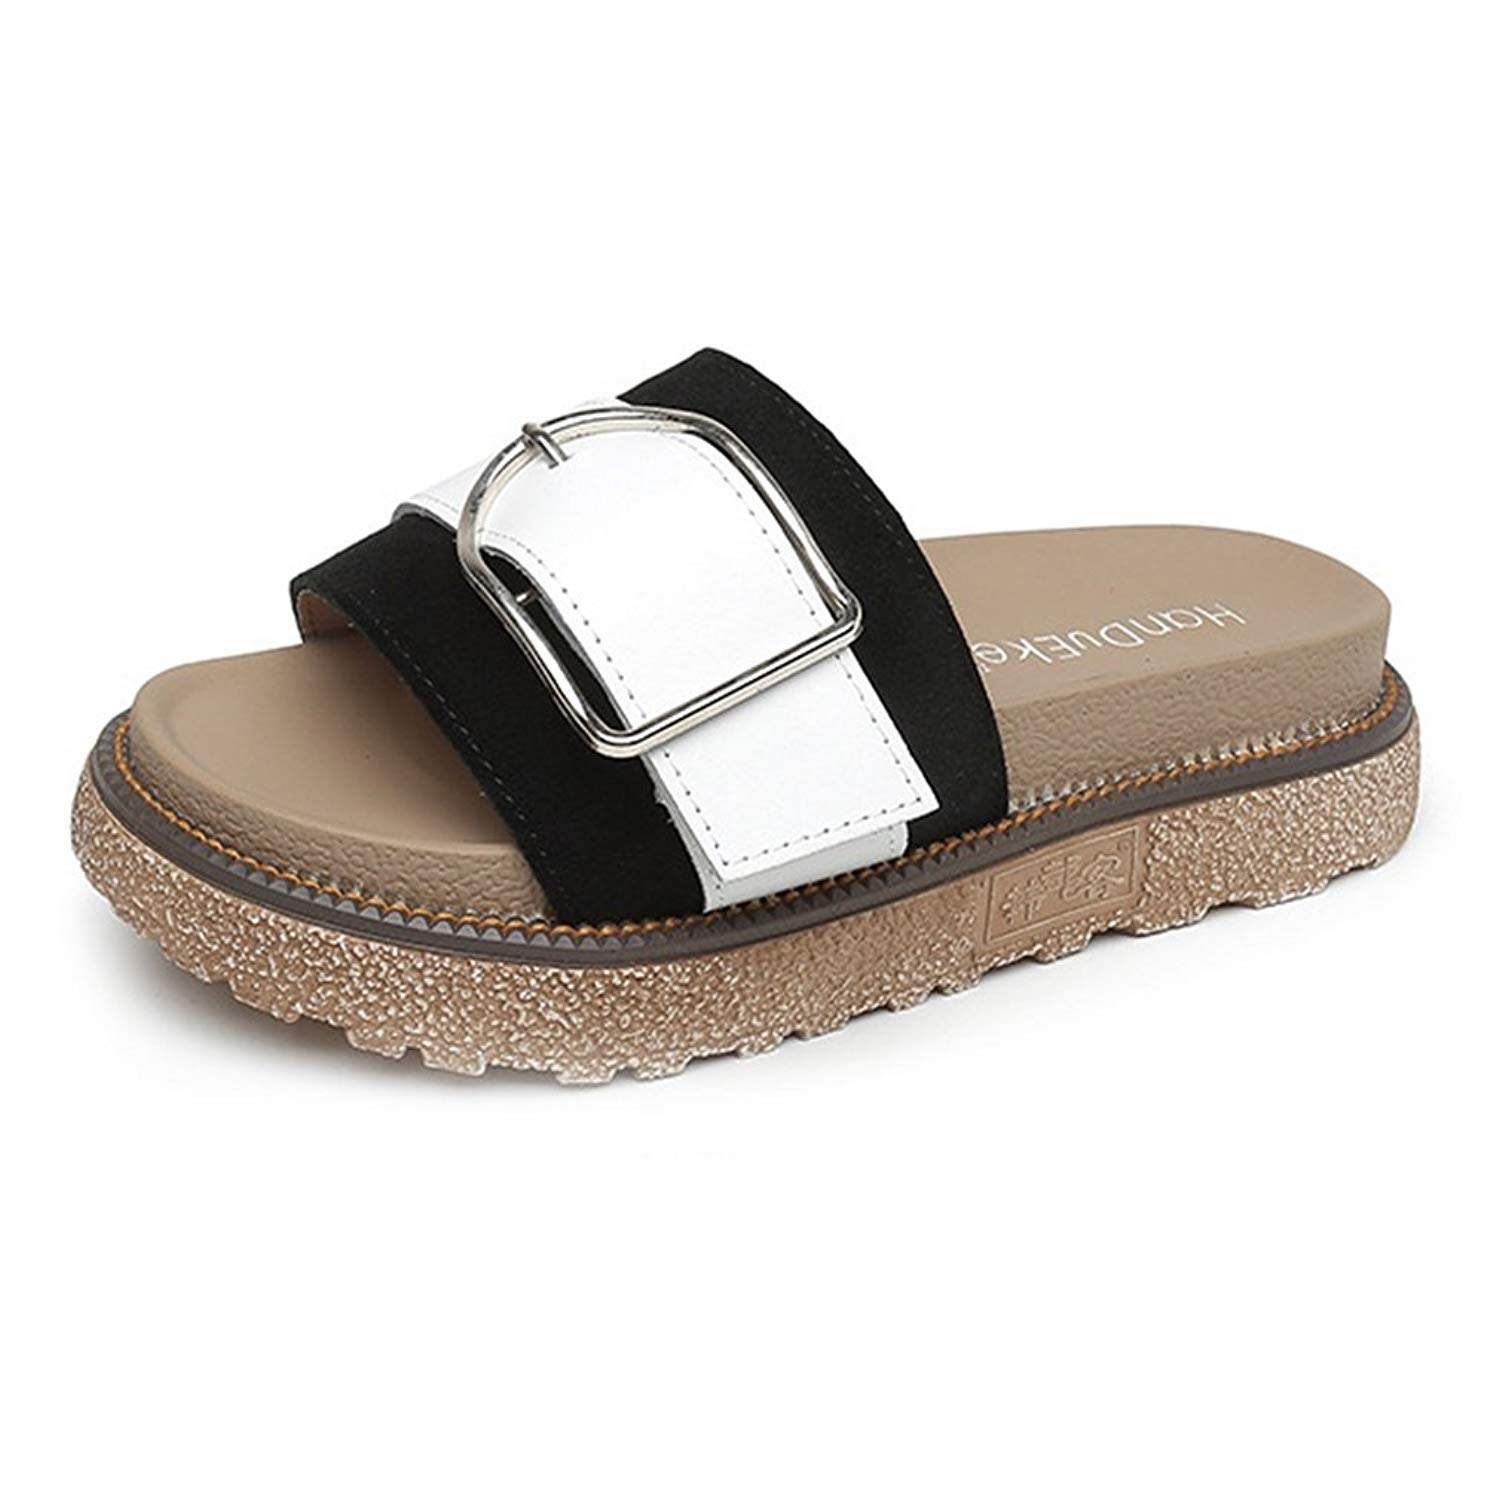 b578835e7dceee Get Quotations · CYBLING Womens Slip On Slide Flat Sandals Platform Wedge Sandal  Shoes with Buckle Accent